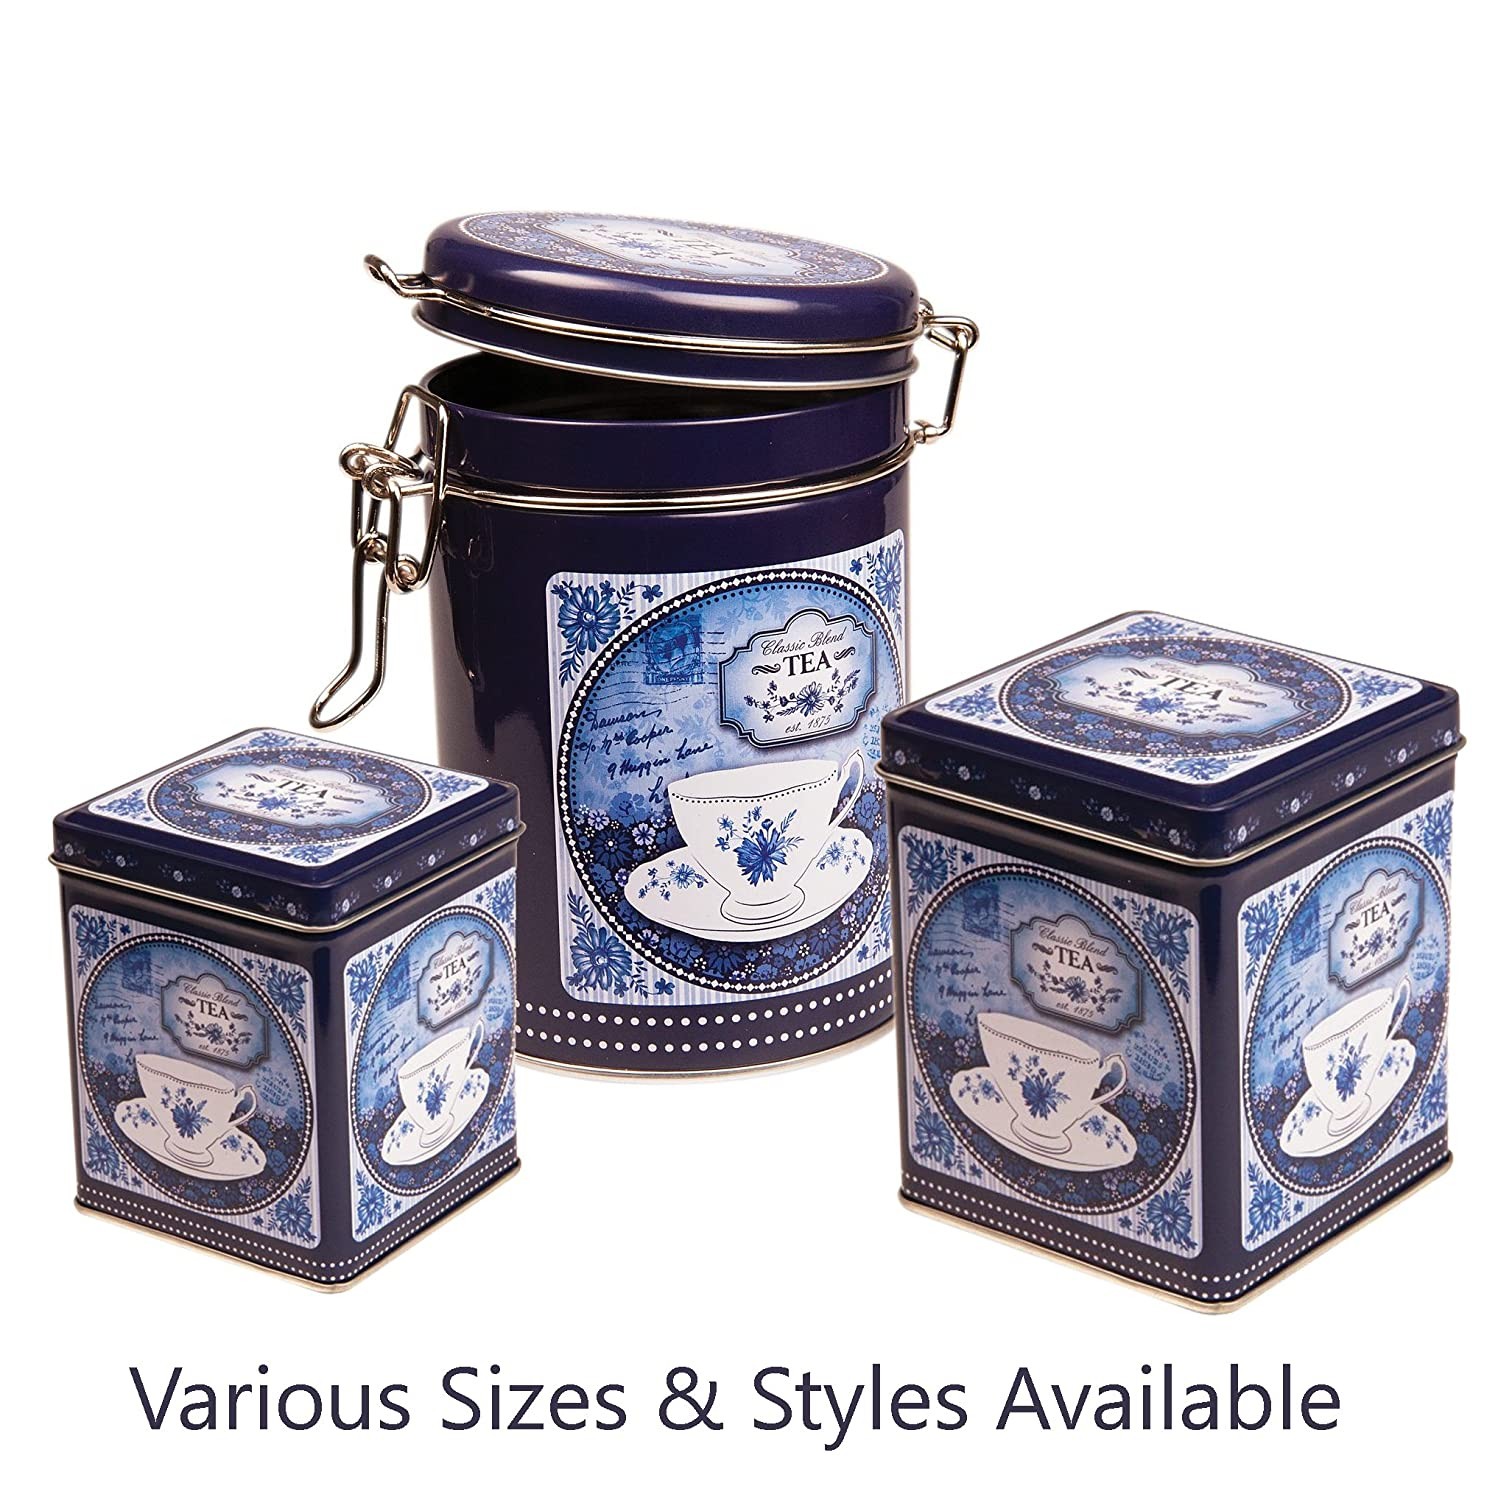 CHINA BLUE - Classic Blend Retro Vintage Style SQUARE Hinged Lid 100g Tea Caddy / Kitchen Storage Tin - Blue & White - 9.5cm Buzz